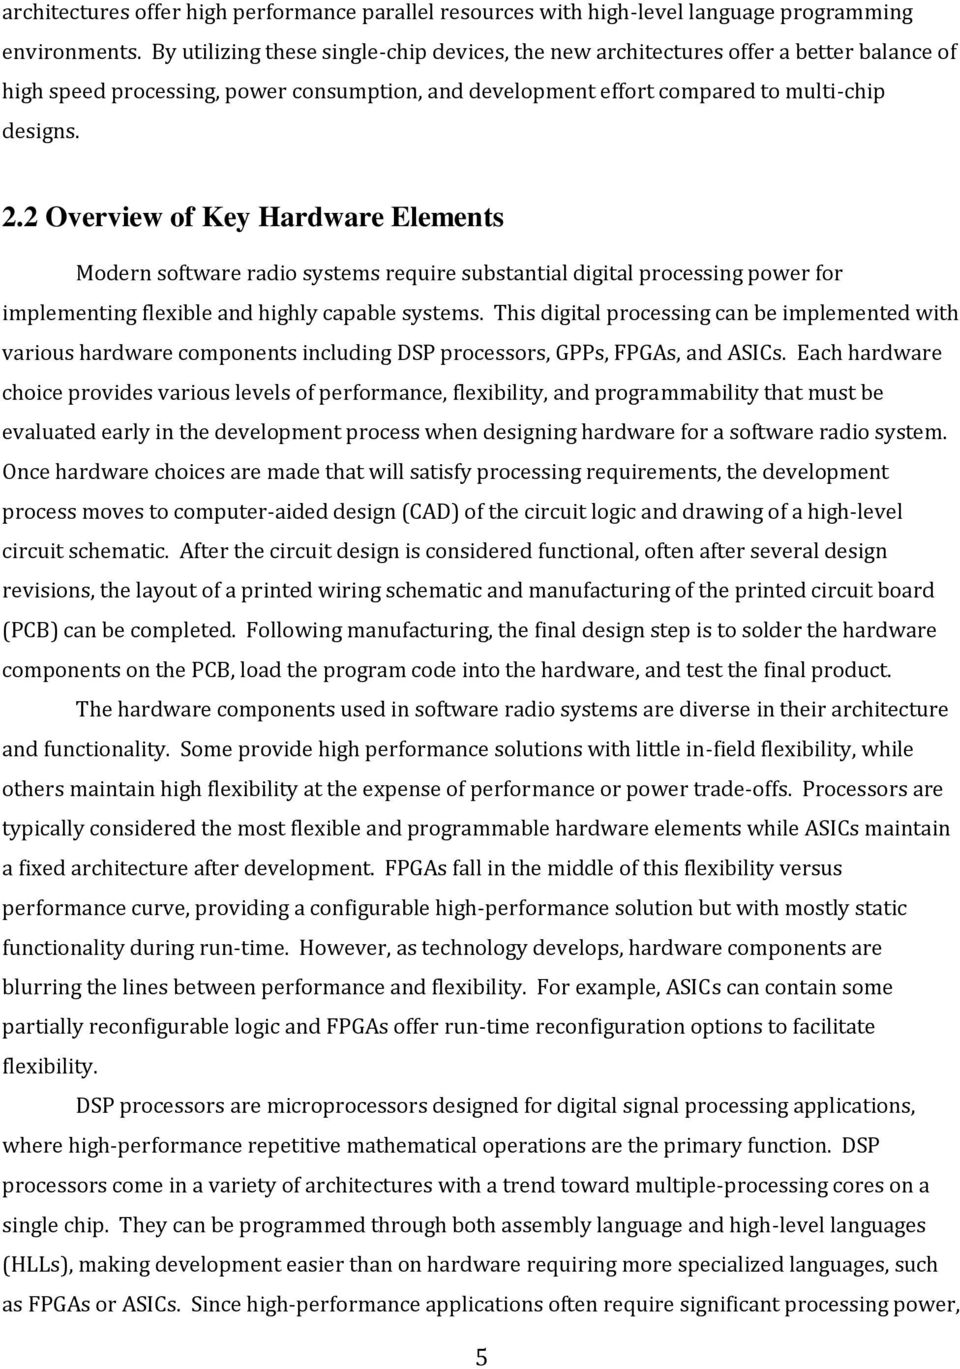 Digital Hardware Design Decisions and Trade-offs for